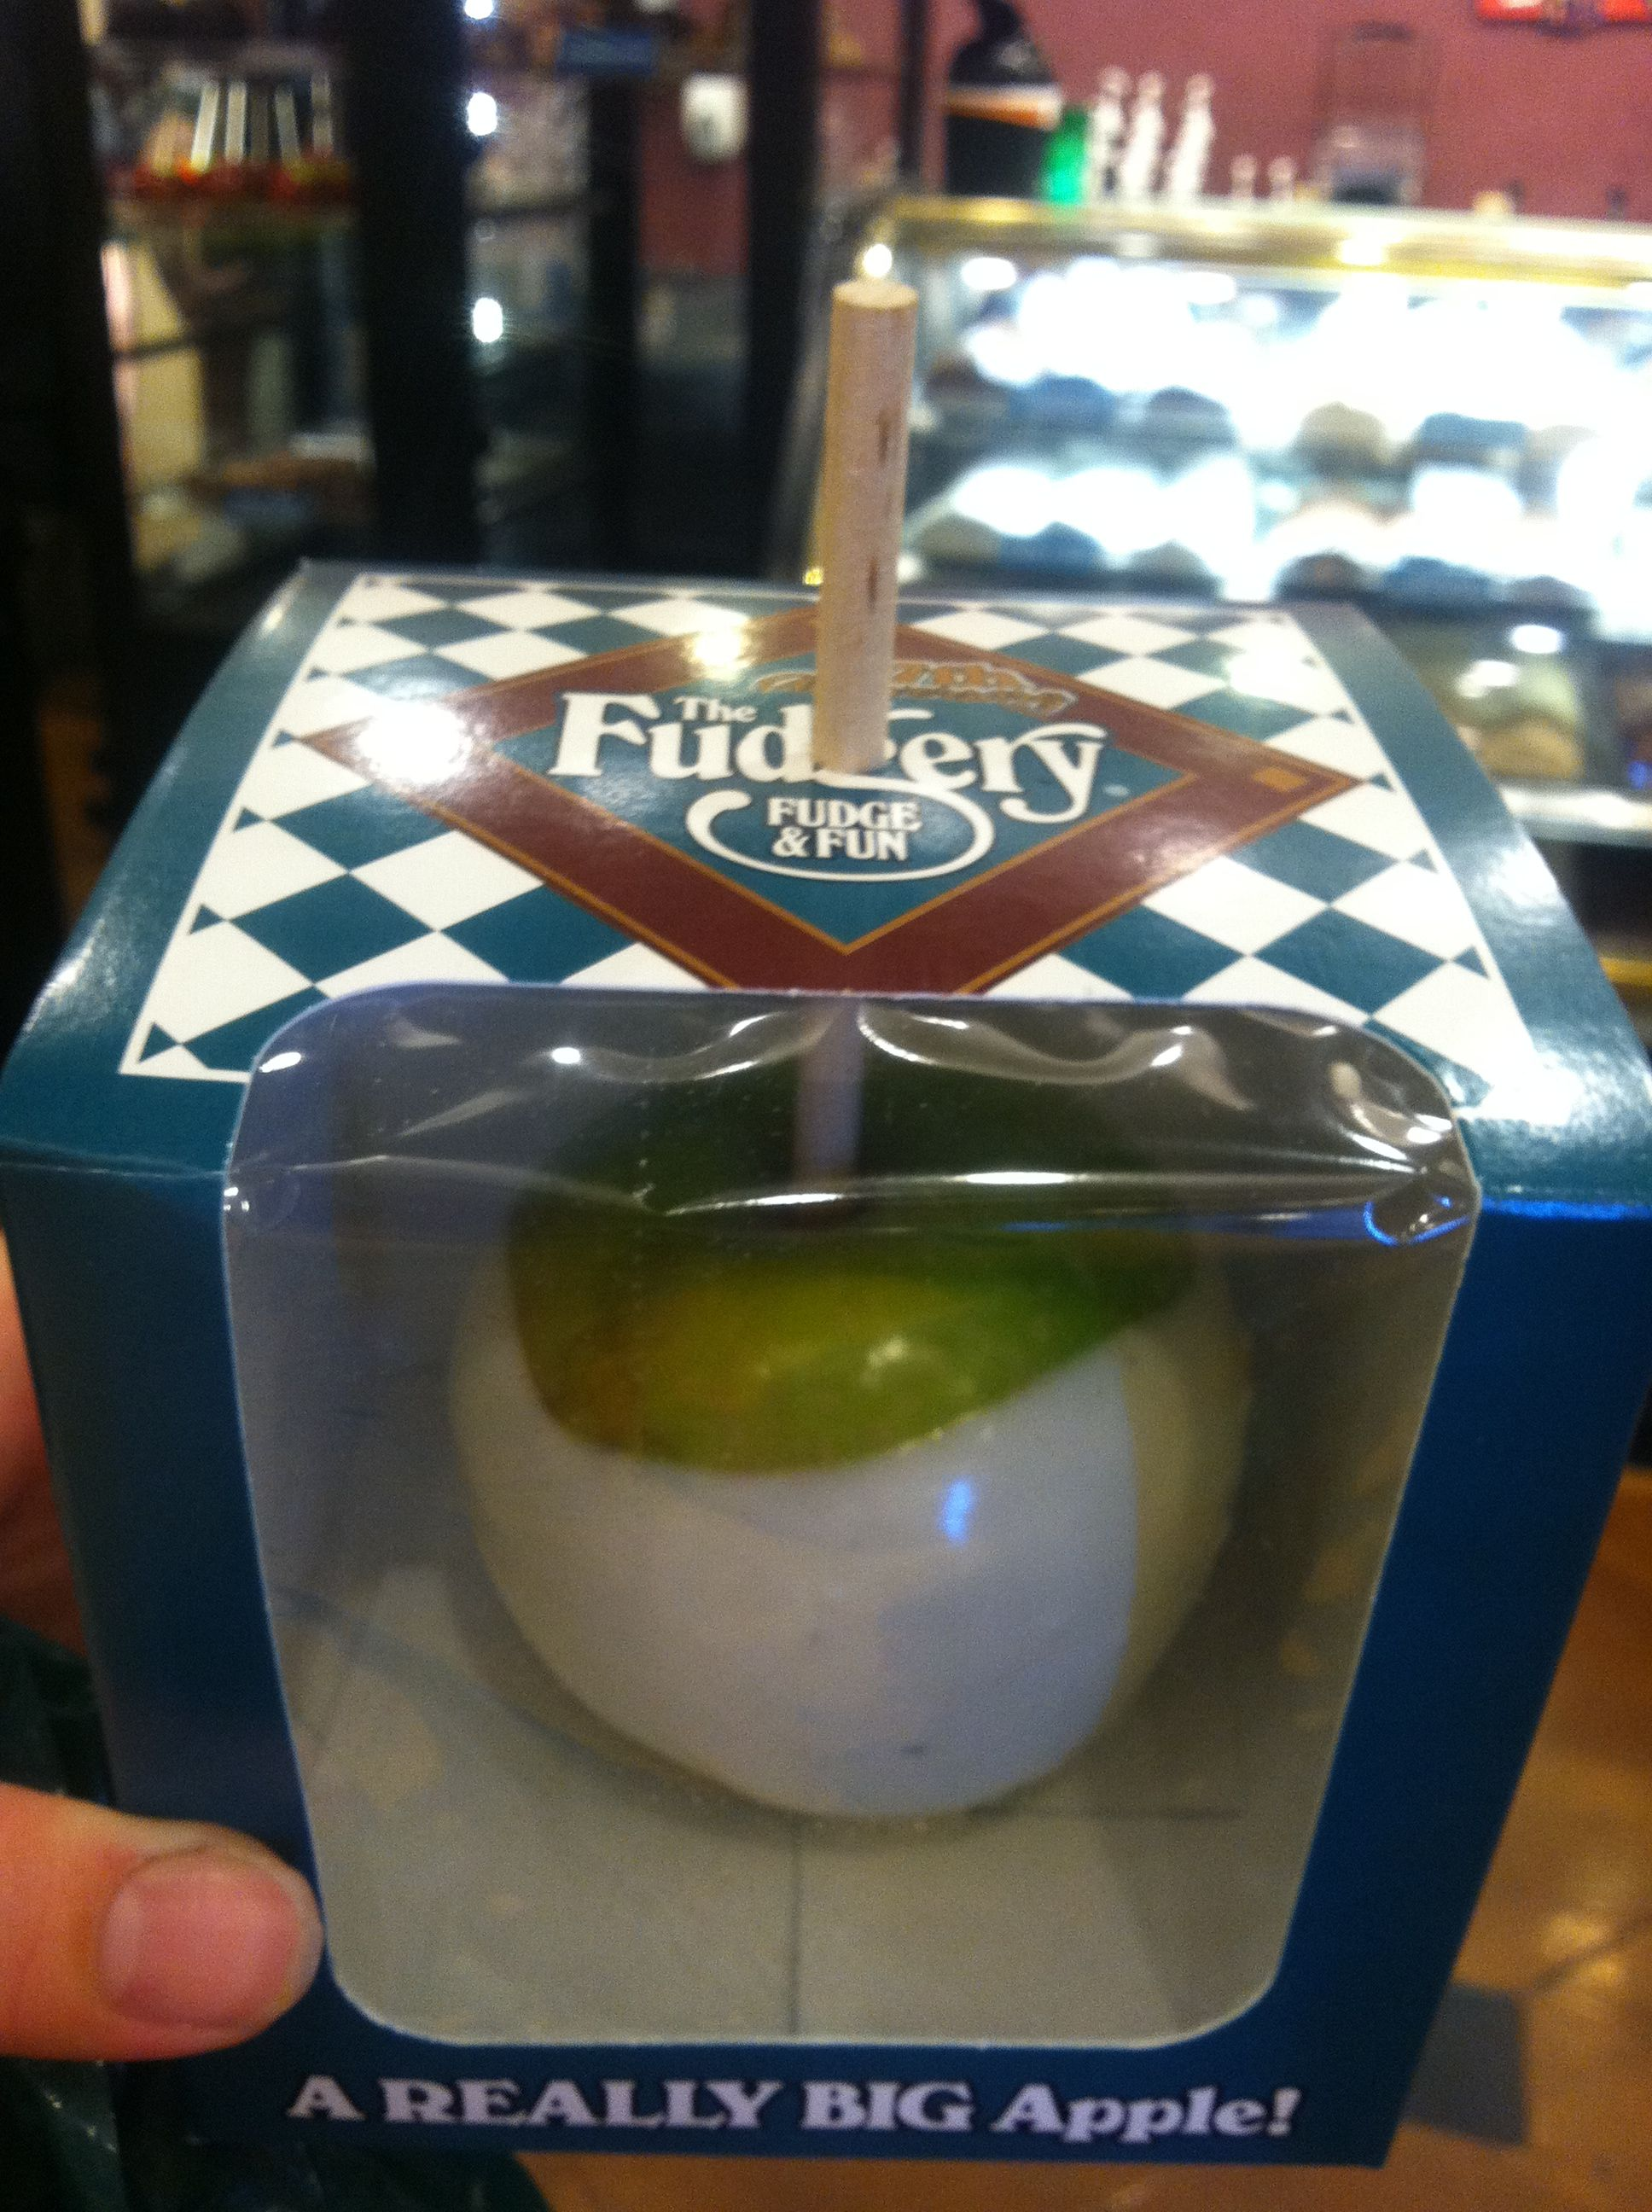 White Chocolate Covered Apple From The Fudgery In Gatlinburg. #Gatlinburg  #Tennessee #dining